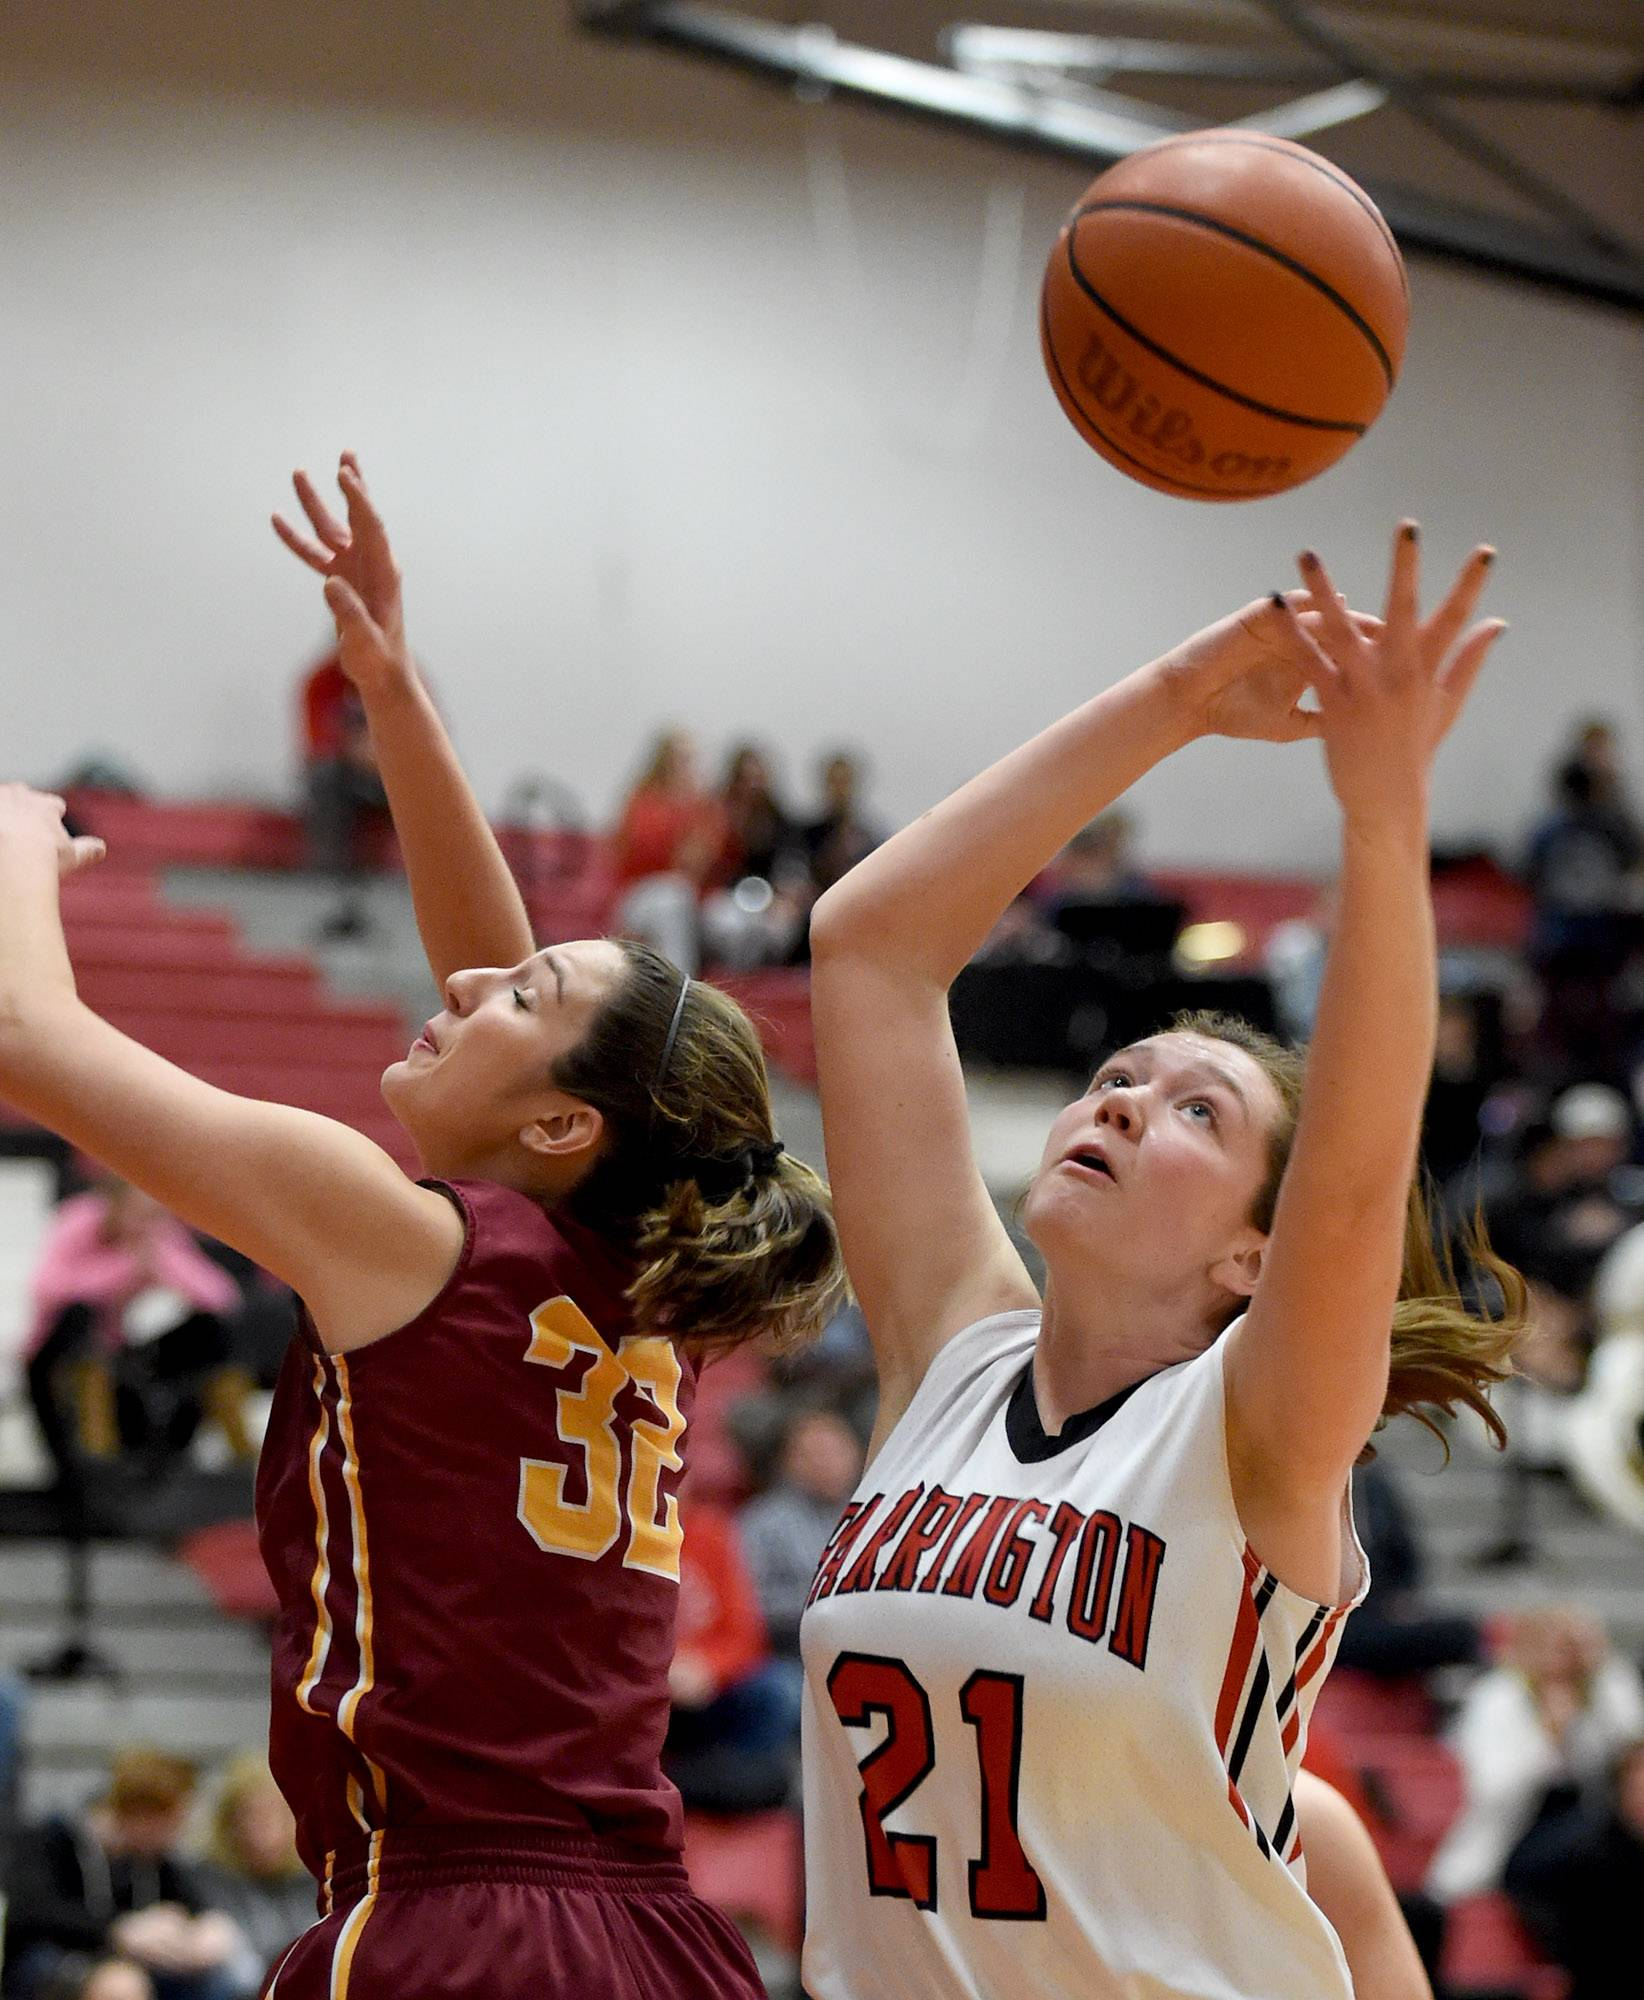 Barrington's Cecilia Stack (21) beats Schaumburg's Laura O'Connell (32) to a rebound Friday at Barrington.